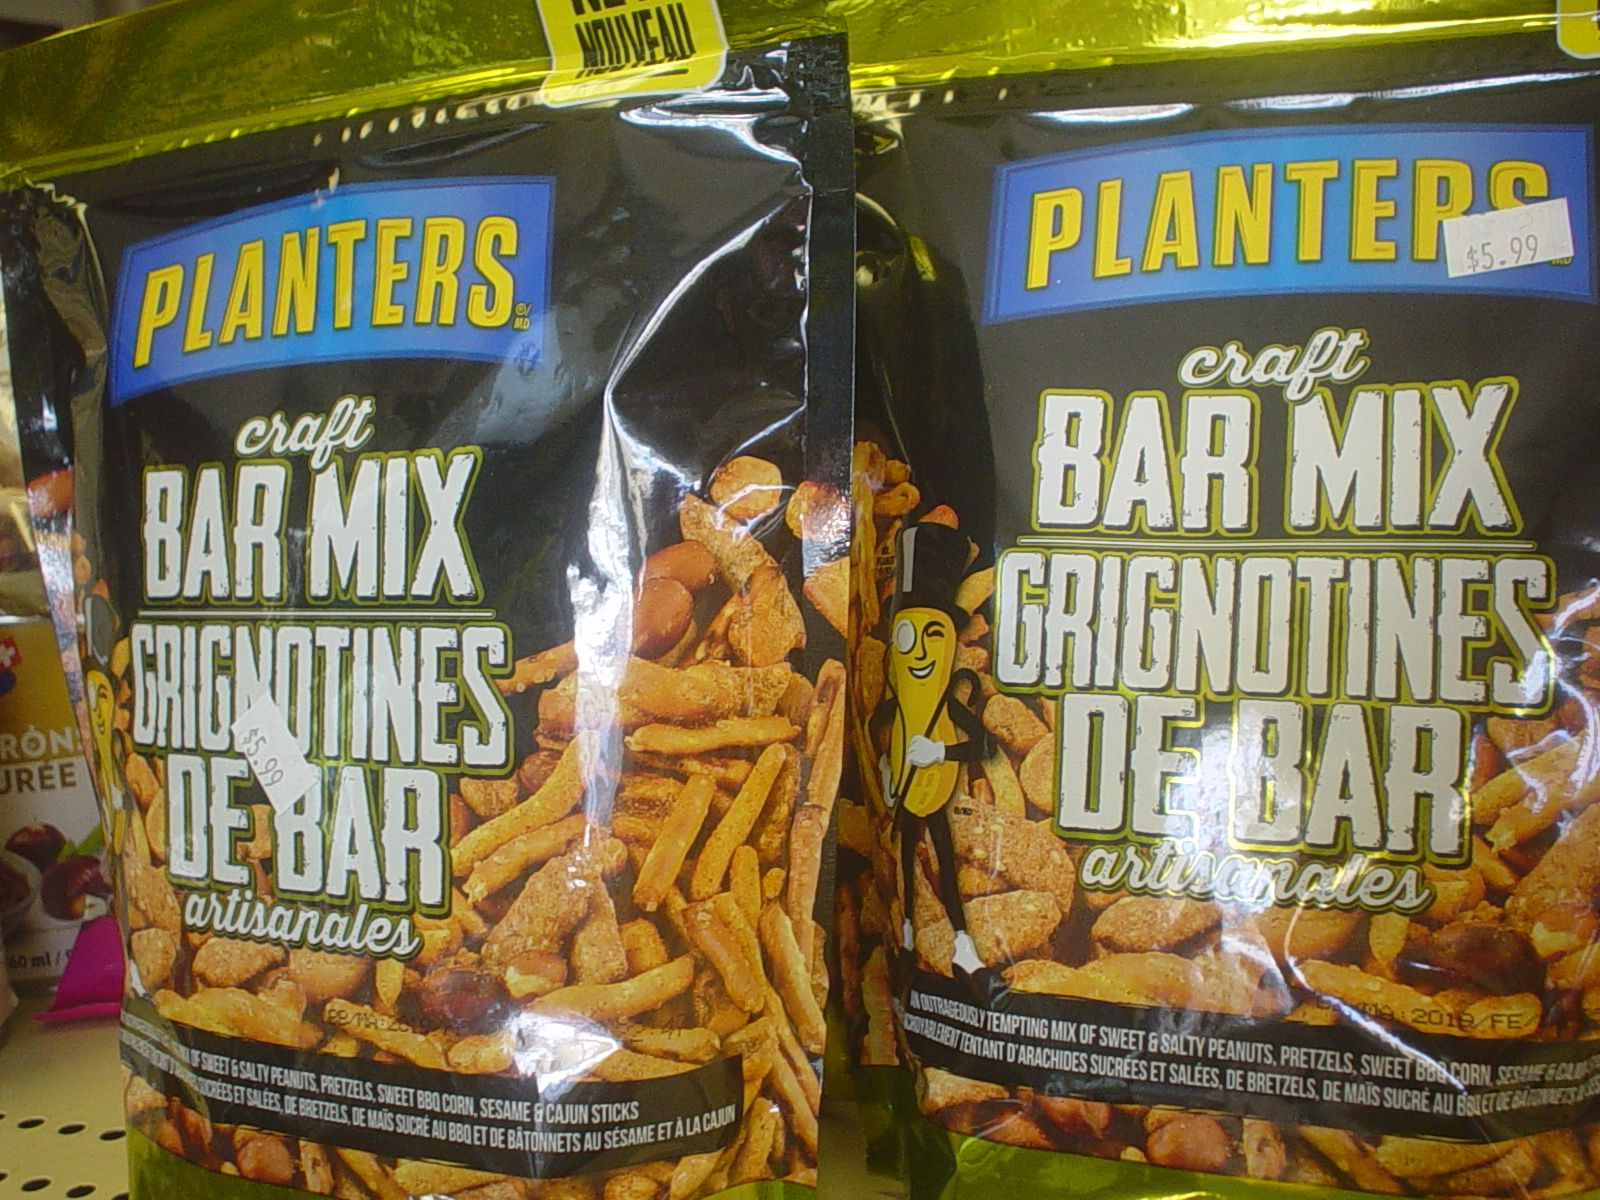 Snack on this Planters Bar Mix! Very tasty and great for